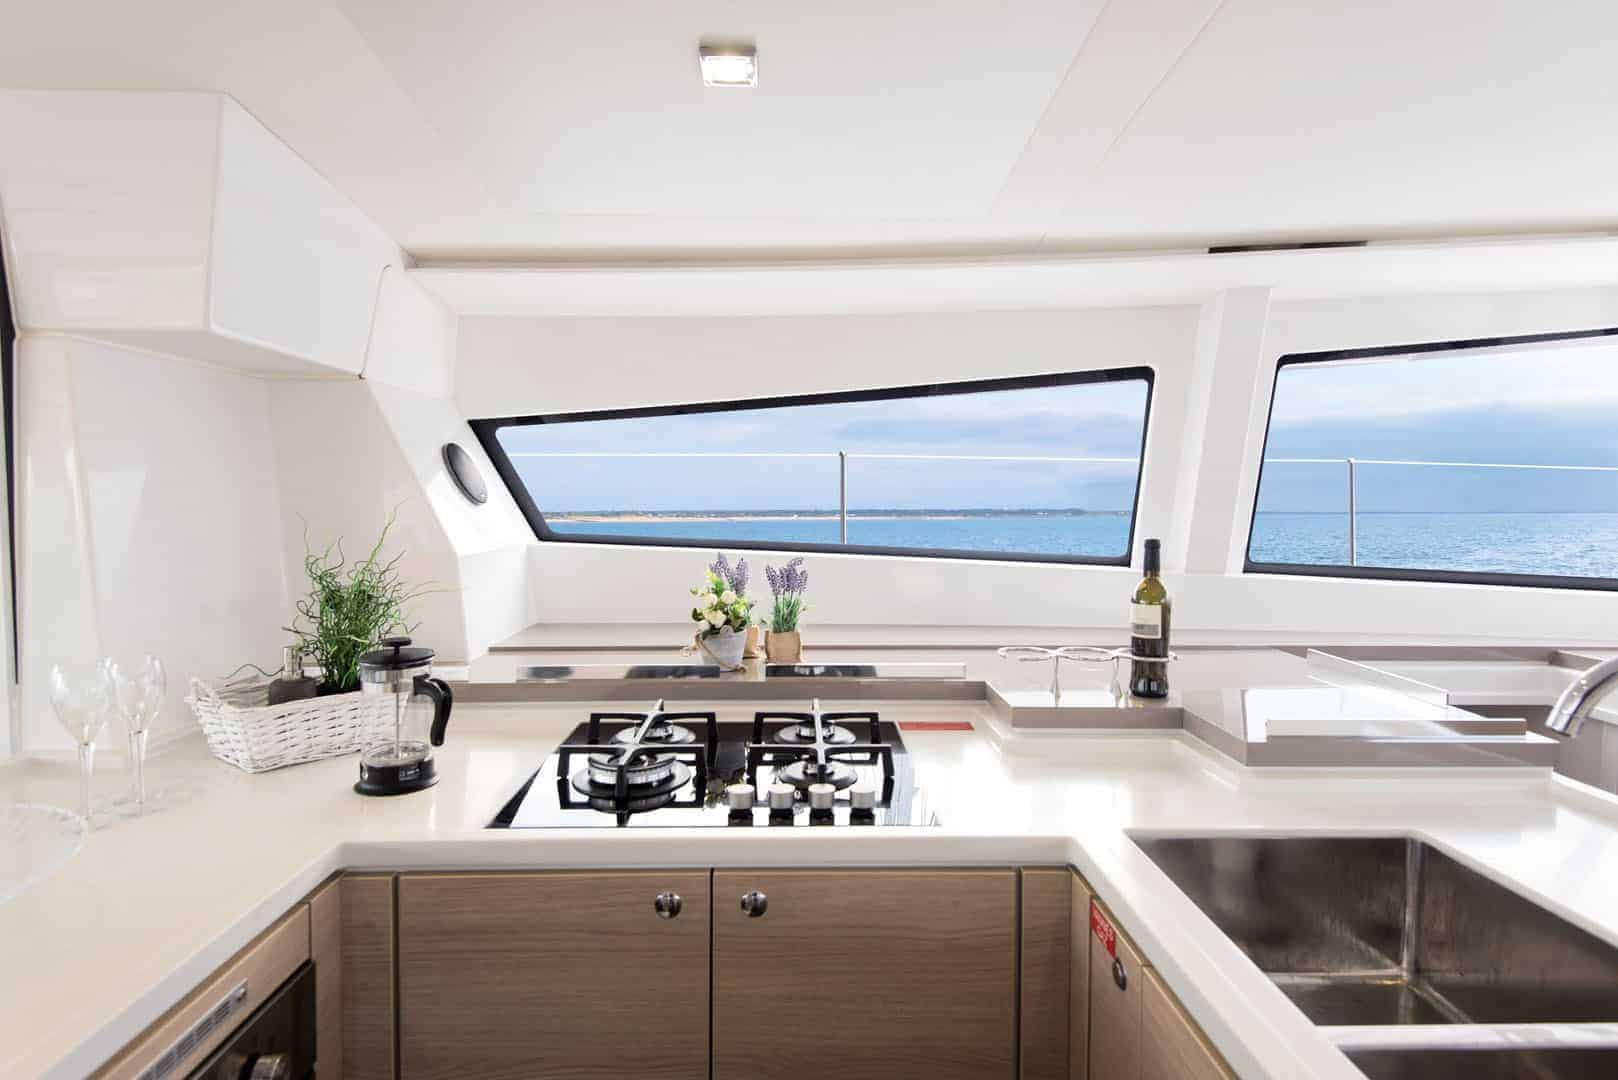 The galley of the Bali 5.4 with elegant design on everything from the windows, sink and stove, to the practical built-in bottle holders